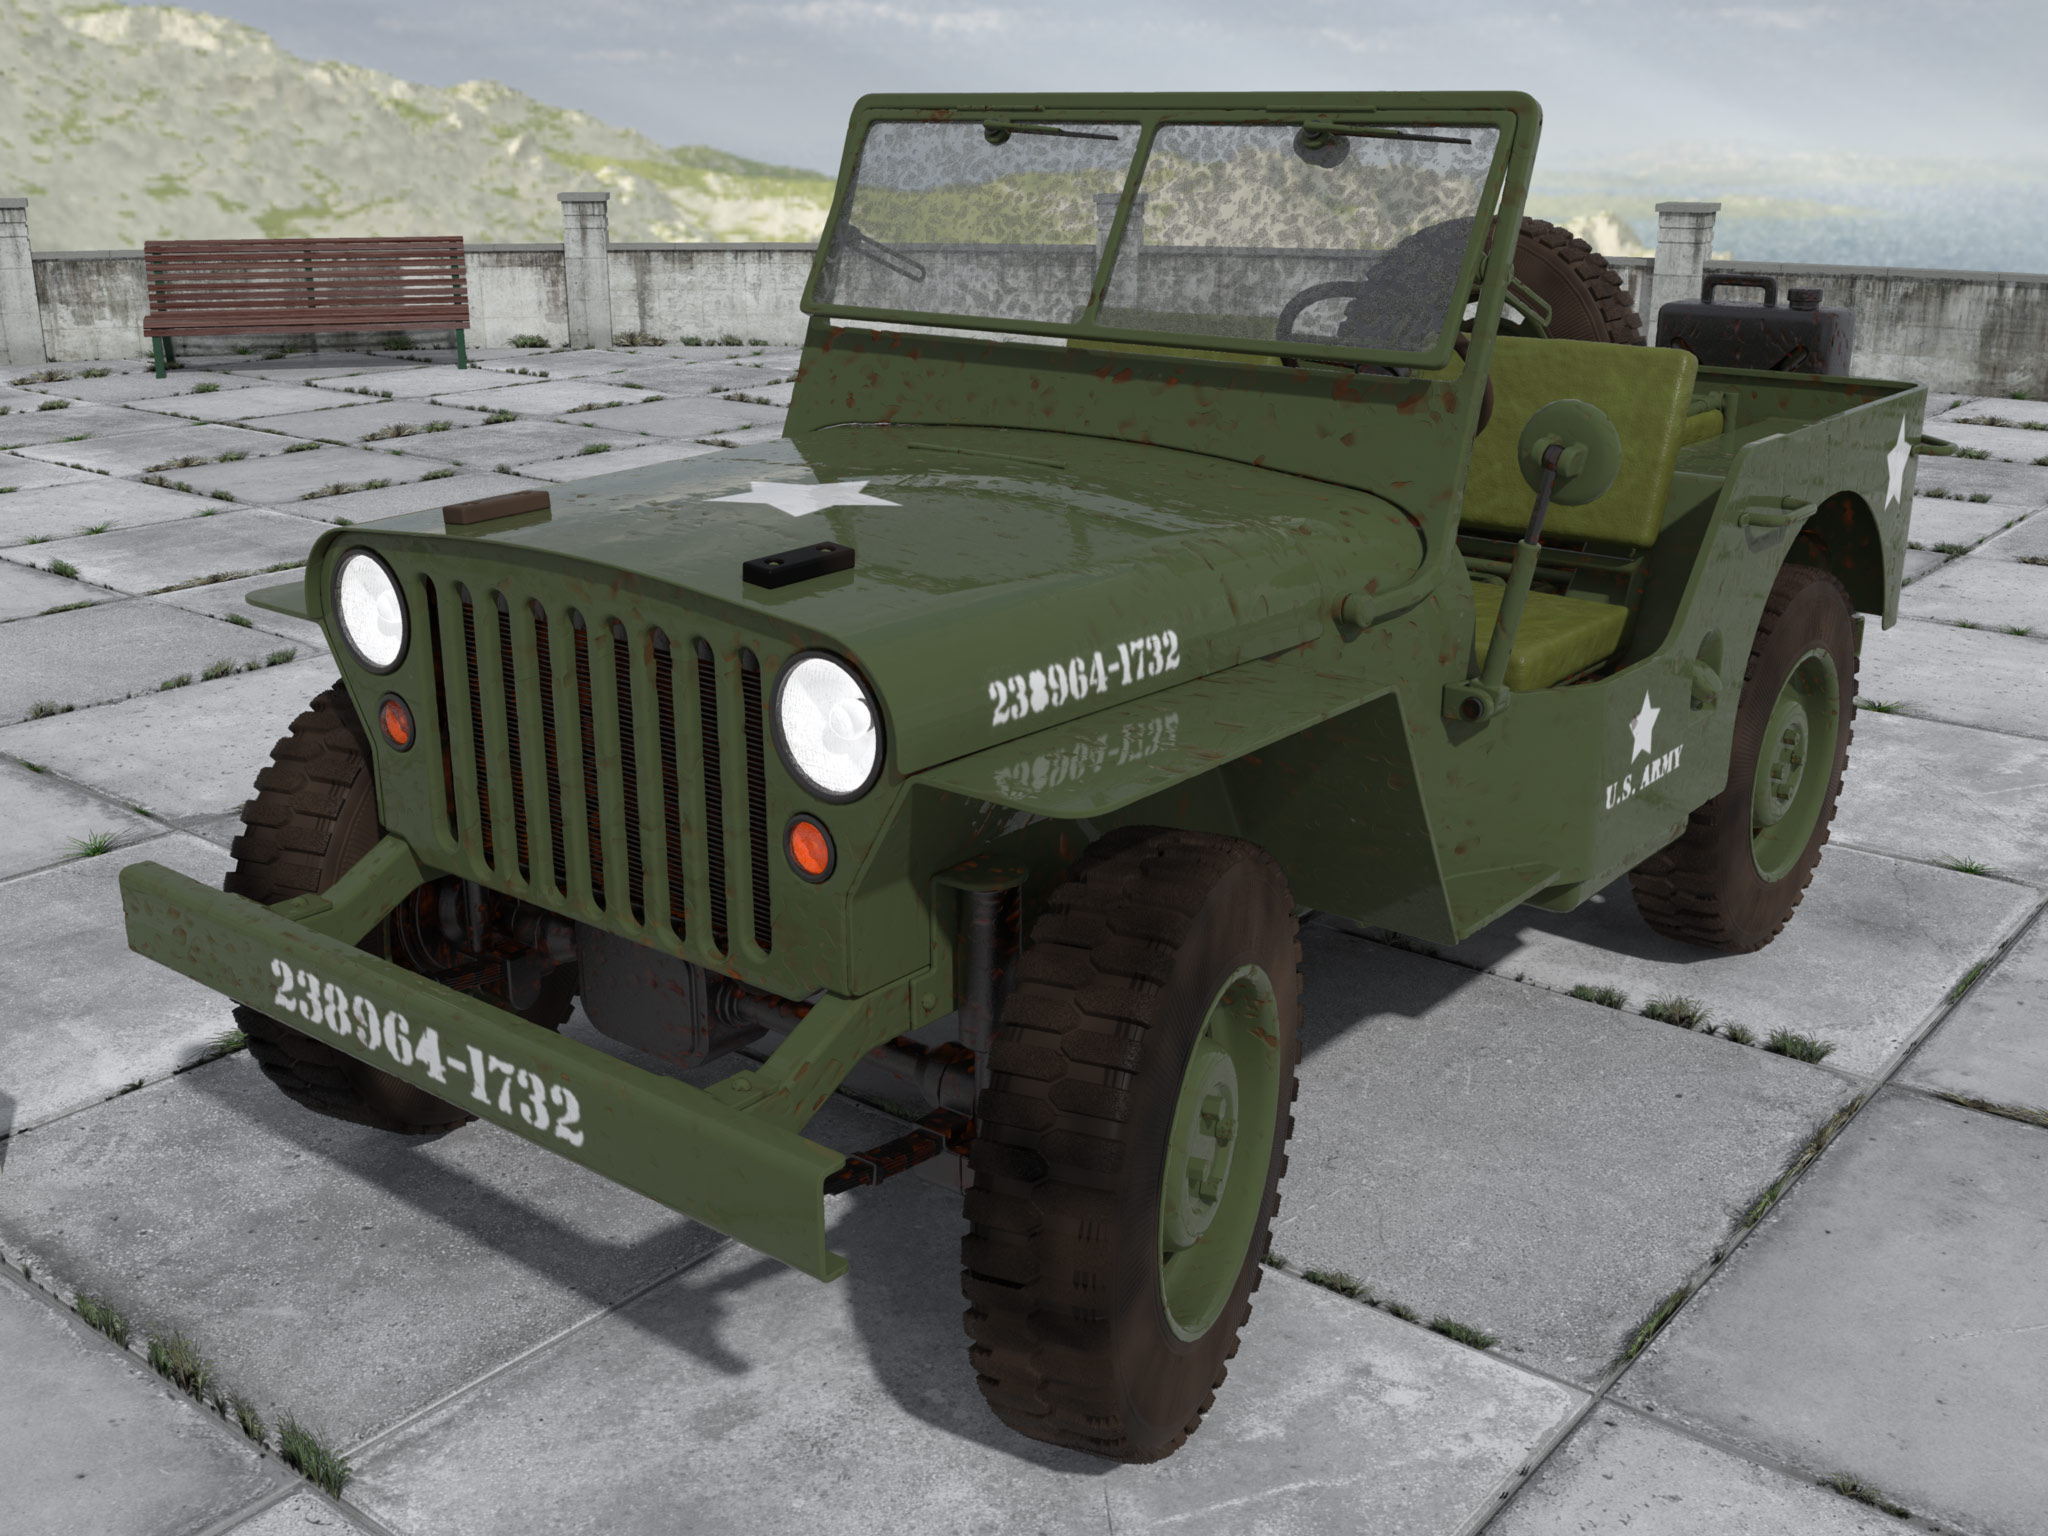 WW2 Jeep New paint job used look by monkeycloud Poser Work In